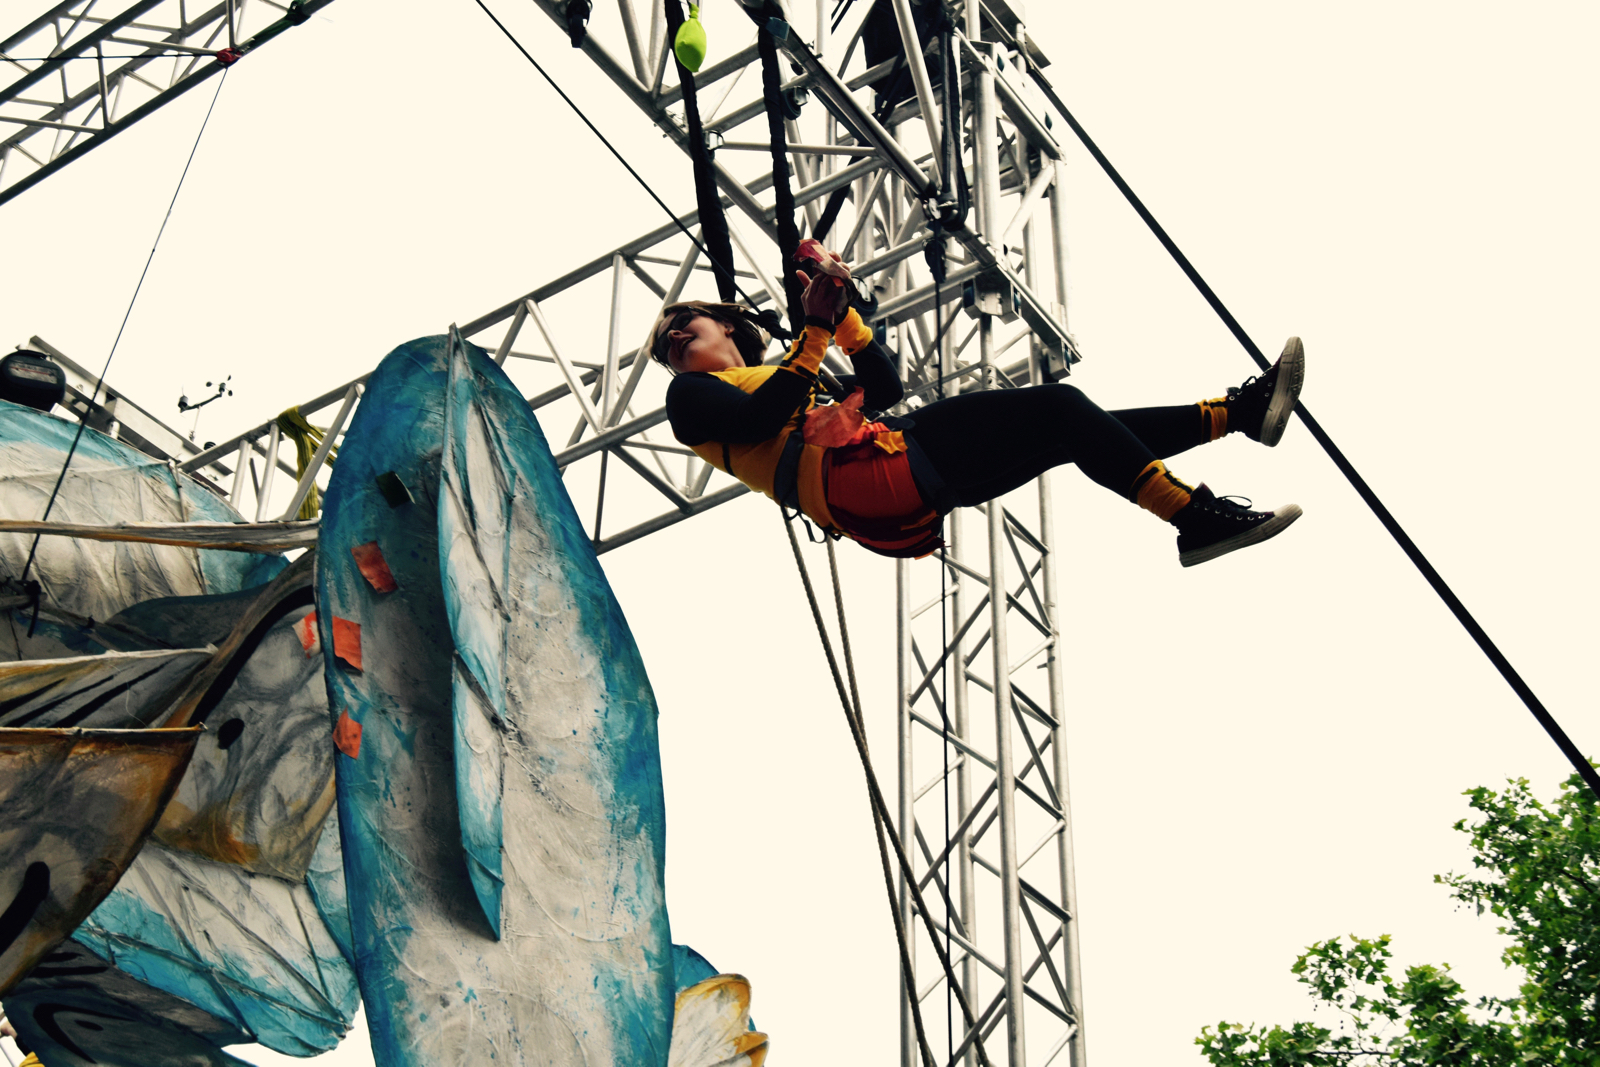 Counterweighted Aerialists